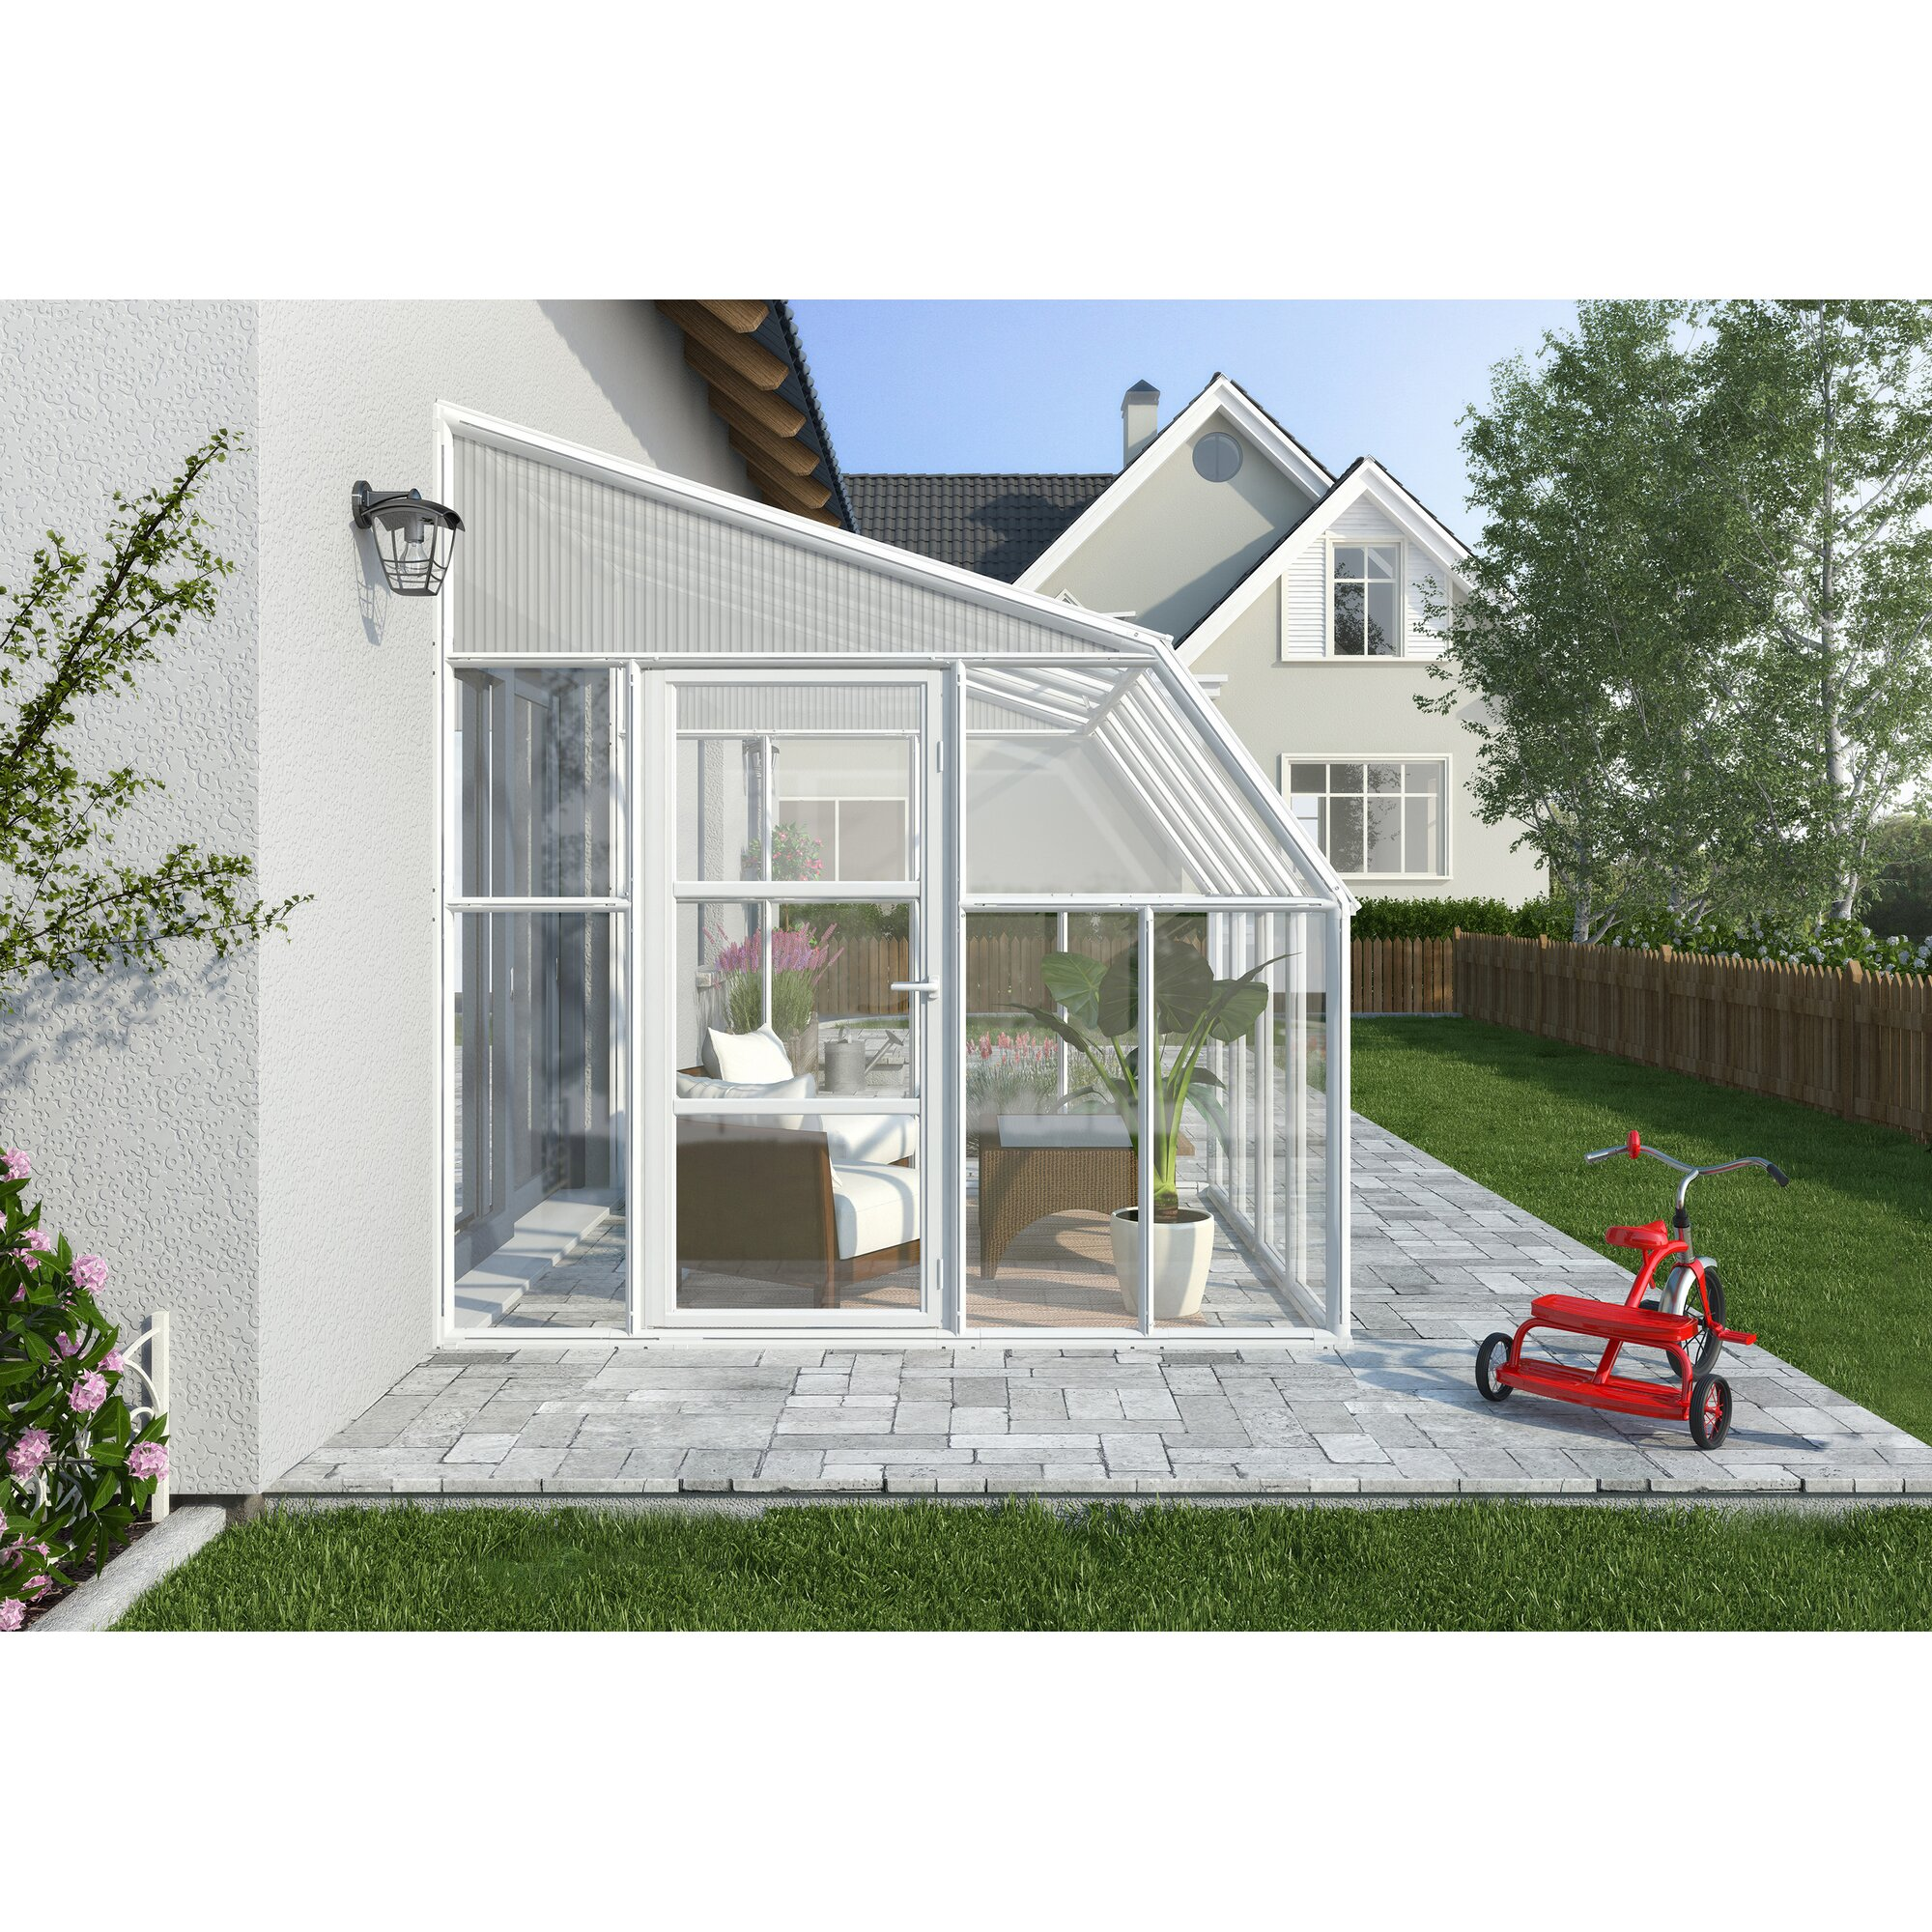 Rion sun room 2 8 ft w x 10 ft d greenhouse wayfair for 10ft by 10ft room